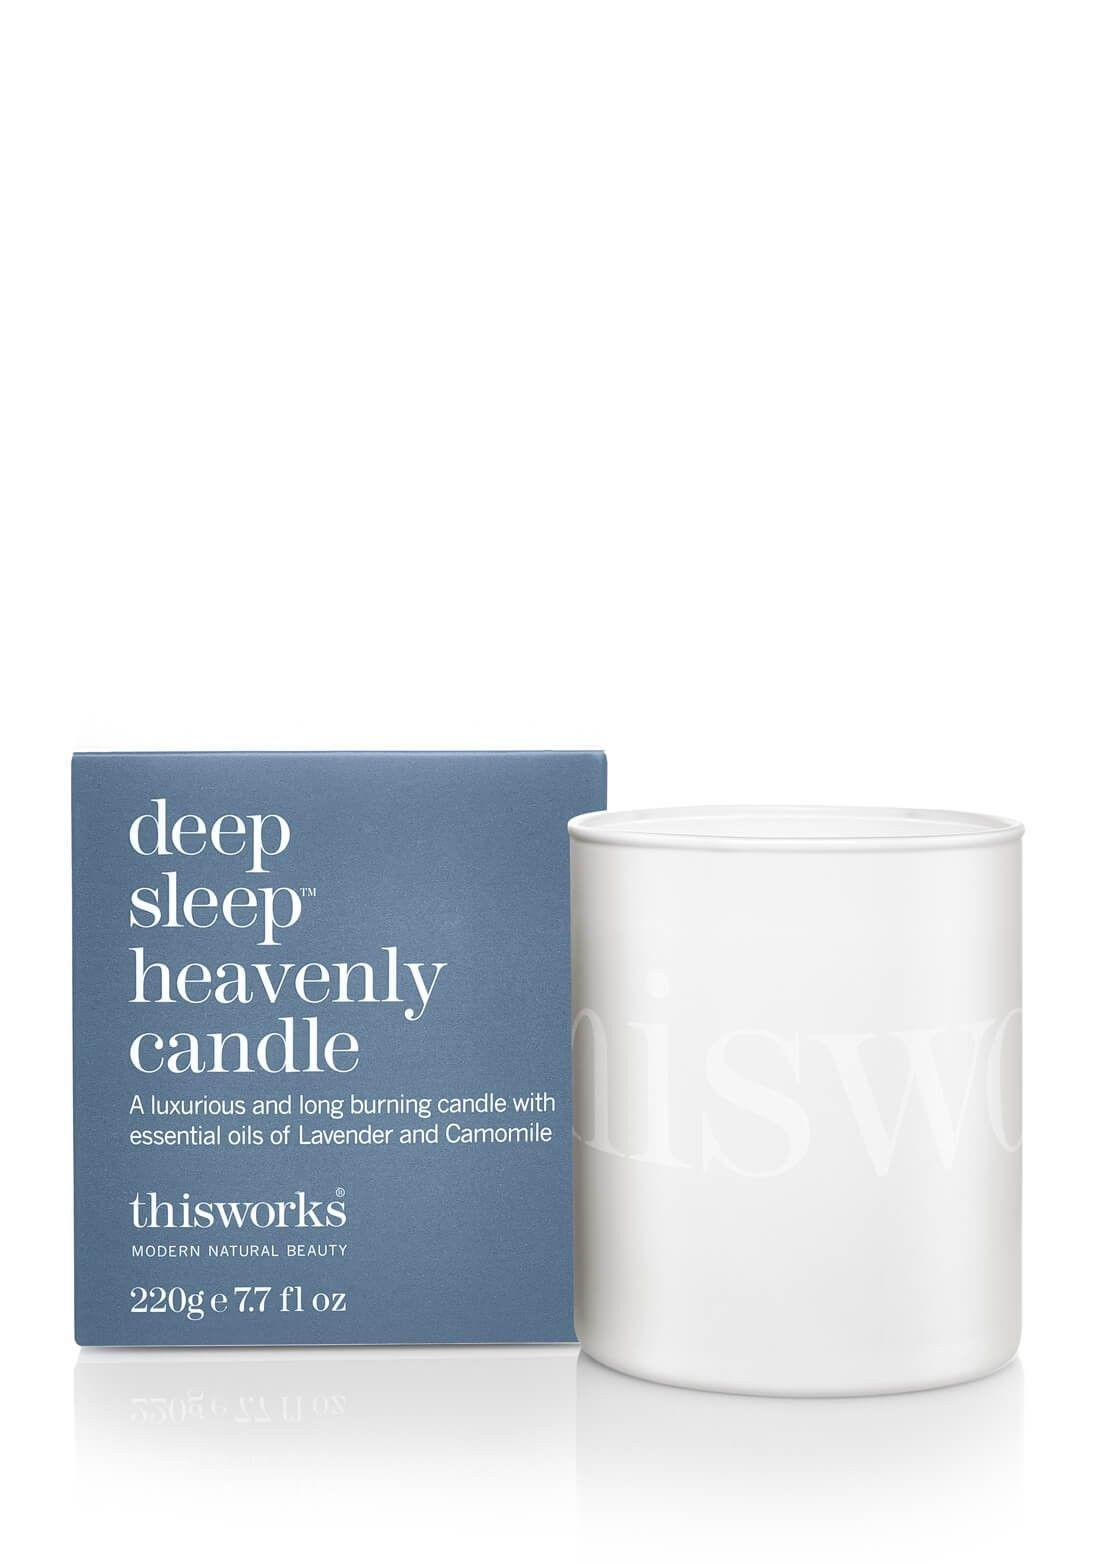 "<p><strong>The Gift: Deep Sleep Candle</strong><br>Share the gift of deeper sleep with a candle that's hand-blended from lavender and chamomile essential oils for a deeply soothing and calming effect.</p> <br> <br> <strong>This Works</strong> deep sleep heavenly candle, $46, available at <a href=""https://www.thisworks.com/us/deep-sleep-heavenly-candle.html"" rel=""nofollow noopener"" target=""_blank"" data-ylk=""slk:This Works"" class=""link rapid-noclick-resp"">This Works</a>"